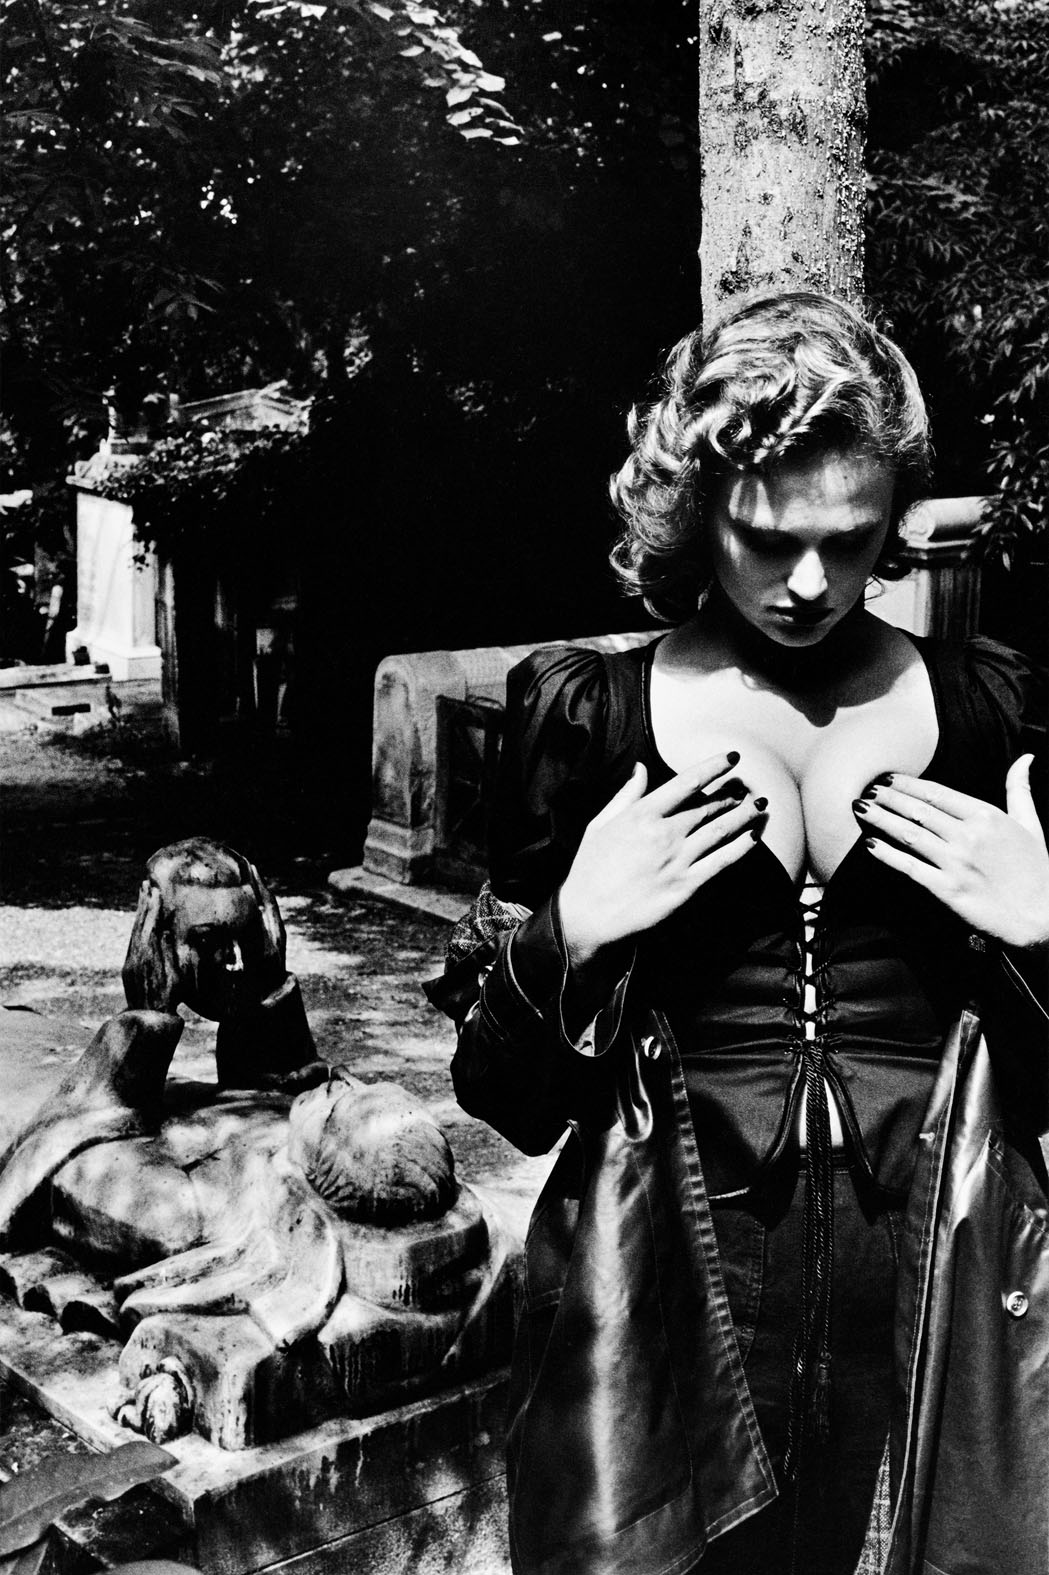 Helmut Newton - Fashion Yves Saint Laurent (Père Lachaise_Paris 1977) copyright Helmut Newton Estate